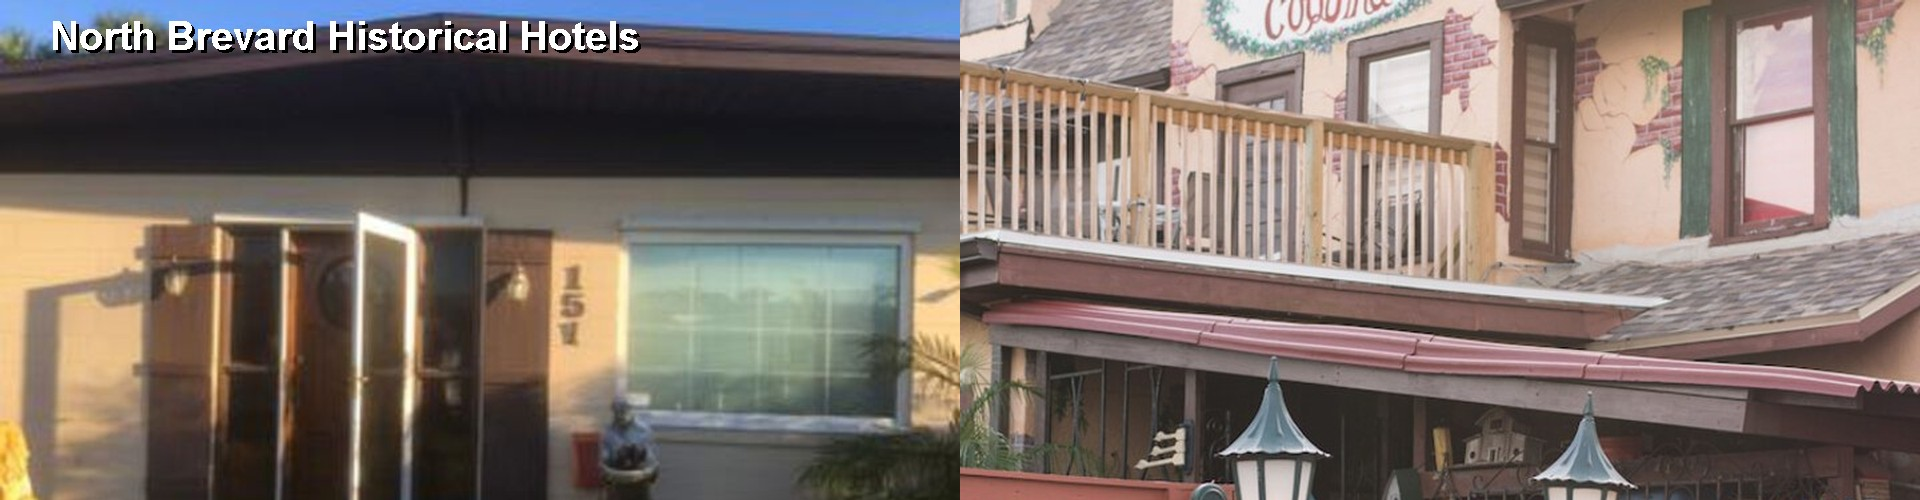 5 Best Hotels near North Brevard Historical